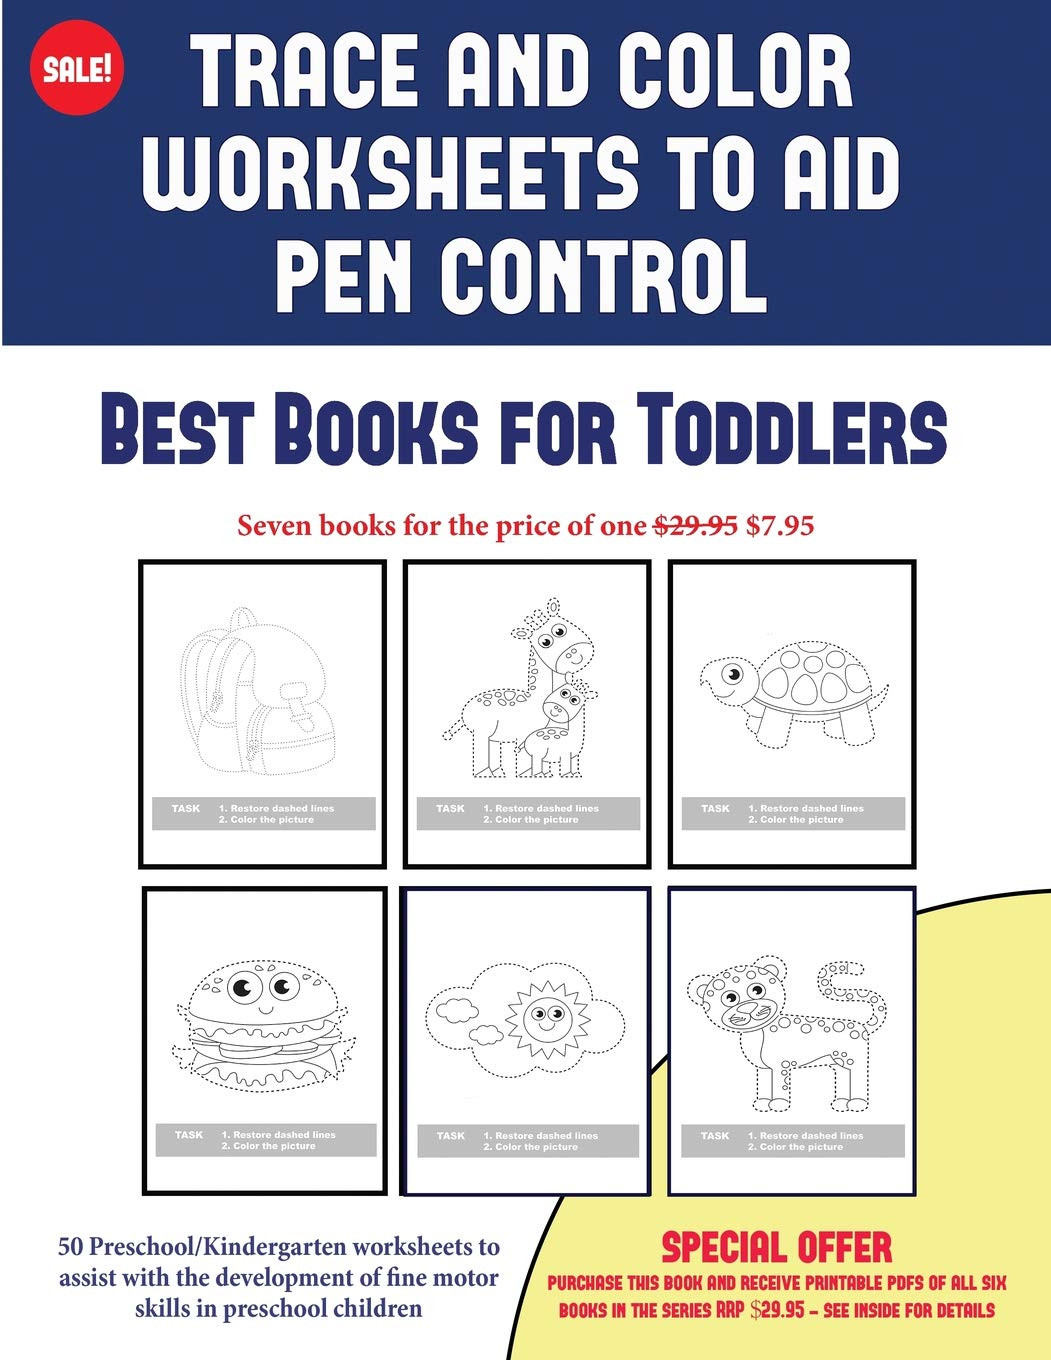 Fine Motor Skills Worksheets Best Books for toddlers Trace and Color Worksheets to Develop Pen Control 50 Preschool Kindergarten Worksheets to assist with the Development Of